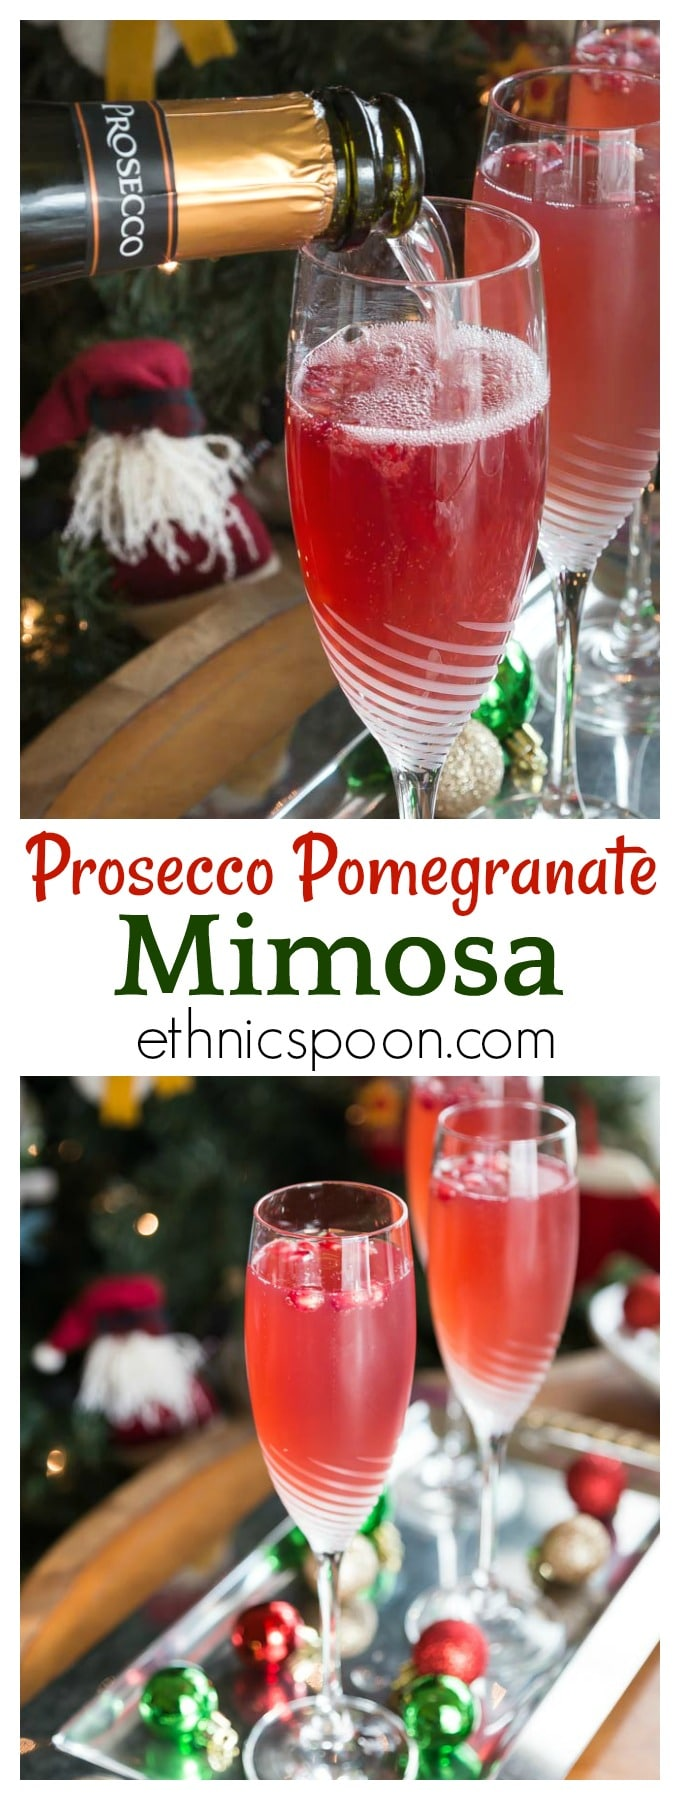 Here is a great brunch cocktail you will love! Try a crisp and refreshing prosecco pomegranate mimosa! Sparkling bubbly prosecco with a splash of tang pomegranate is a tasty combination for this libation. #prosecco #mimosa #cocktail #pomegranate #sparklingcocktail | ethnicspoon.com